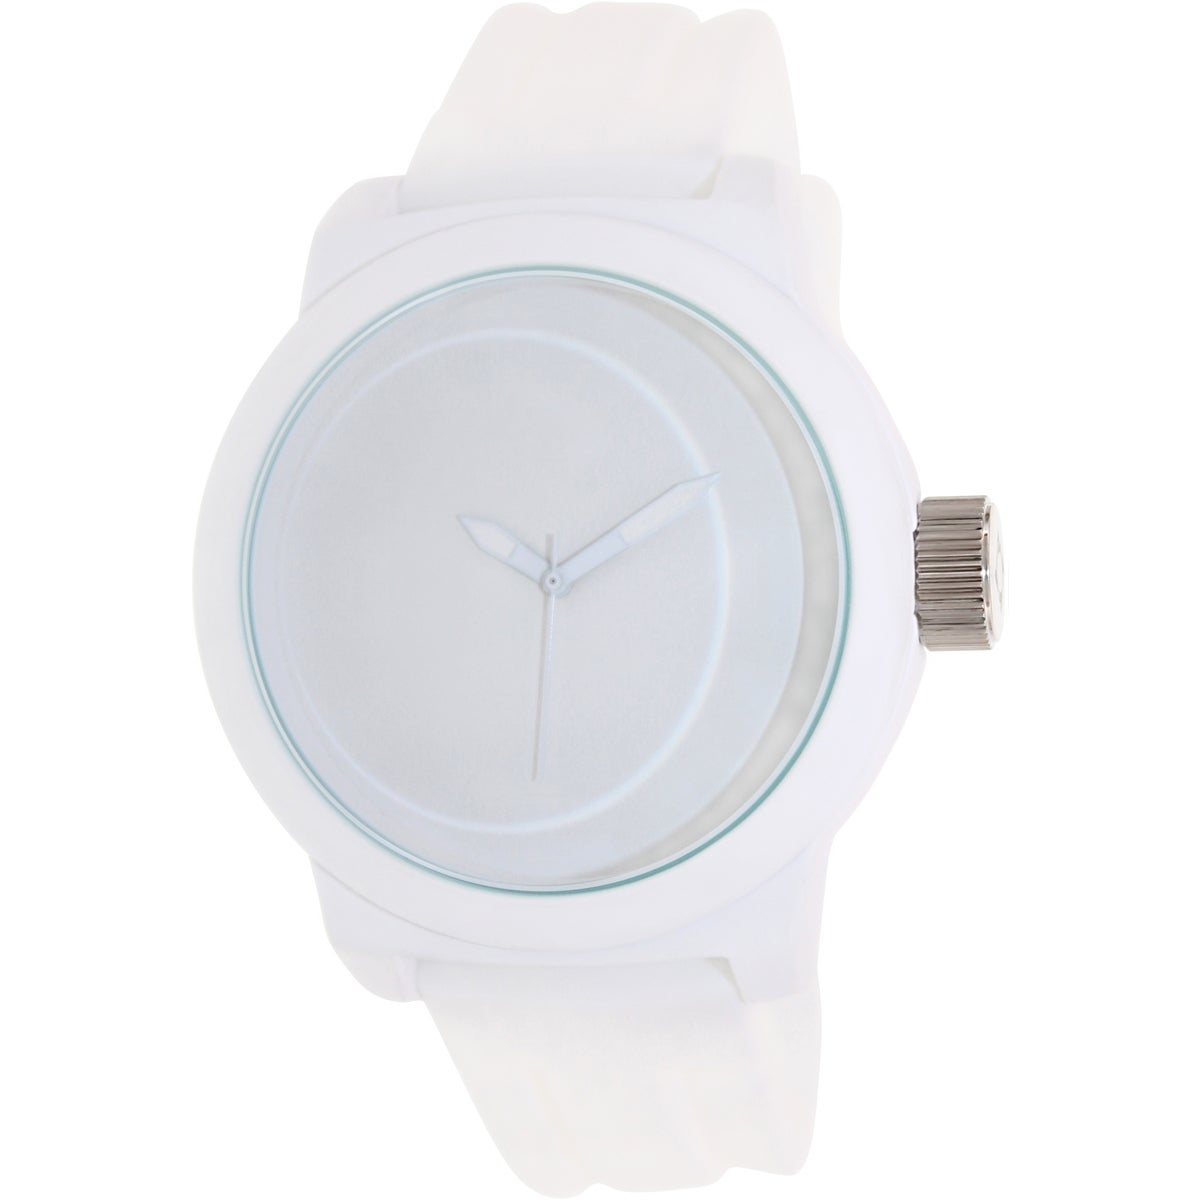 Kenneth Cole Reaction Men's Reaction RK1225 White Silicone Analog Quartz Watch with White Dial